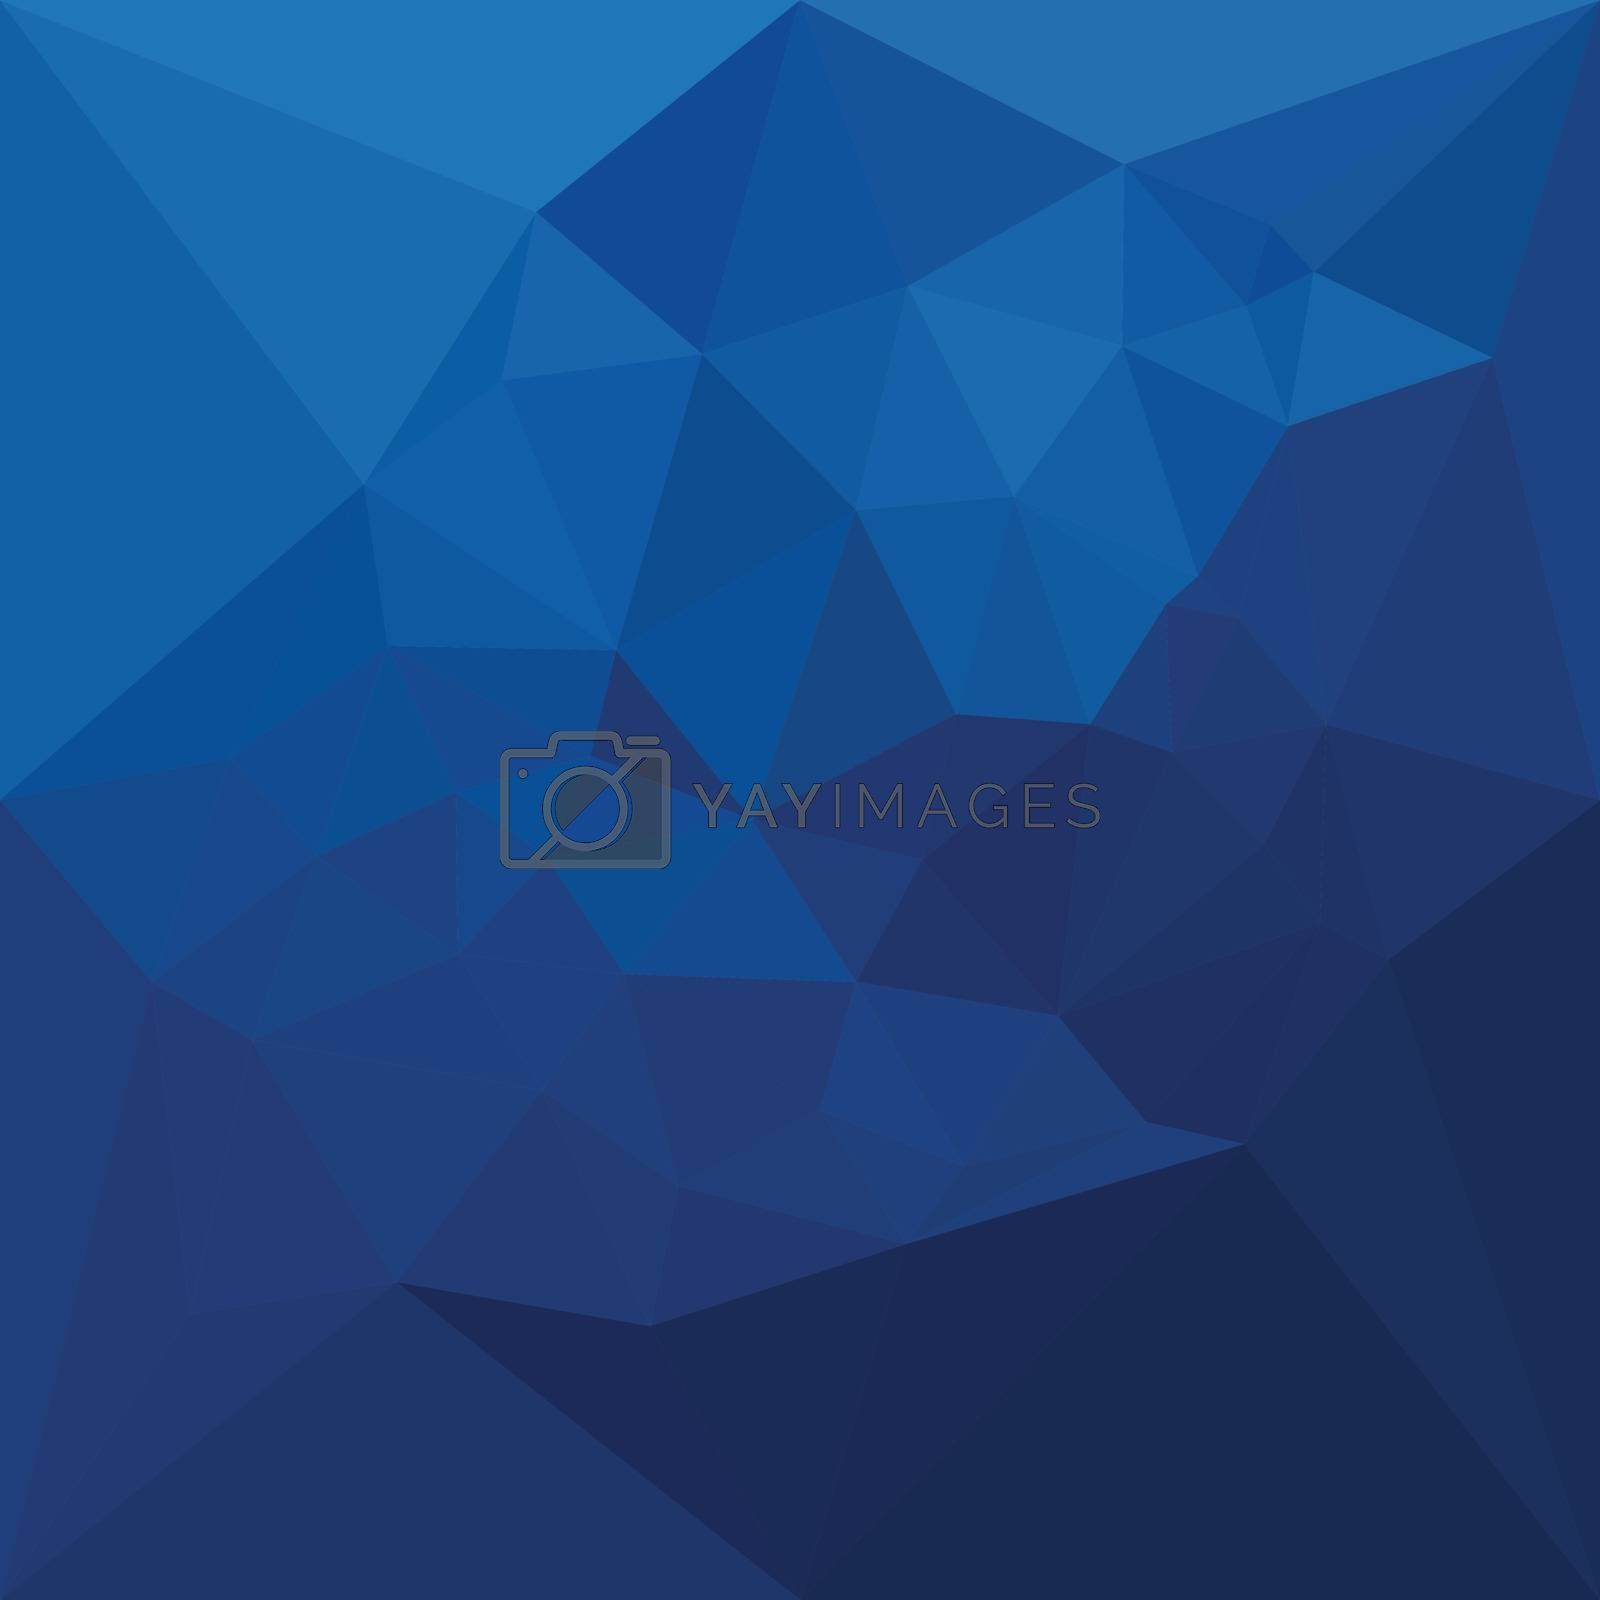 Low polygon style illustration of a egyptian blue abstract geometric background.